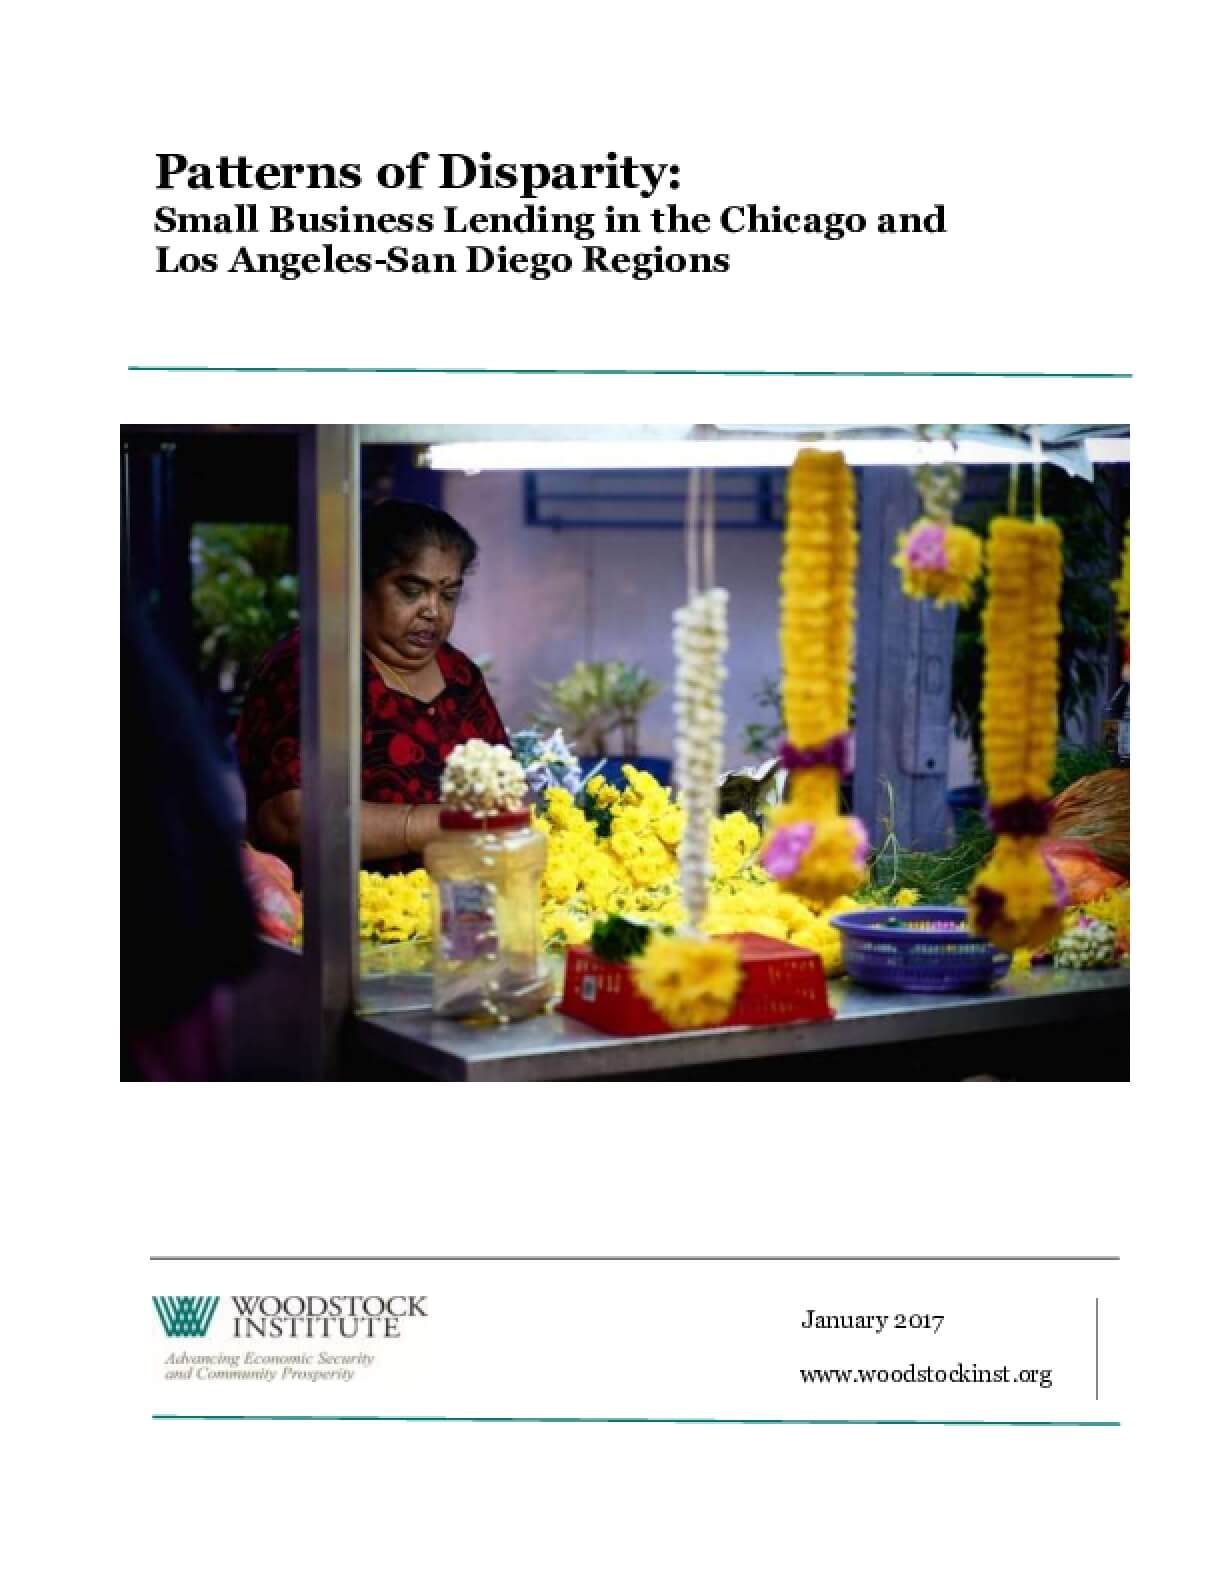 Patterns of Disparity: Small Business Lending in the Chicago and Los Angeles-San Diego Regions